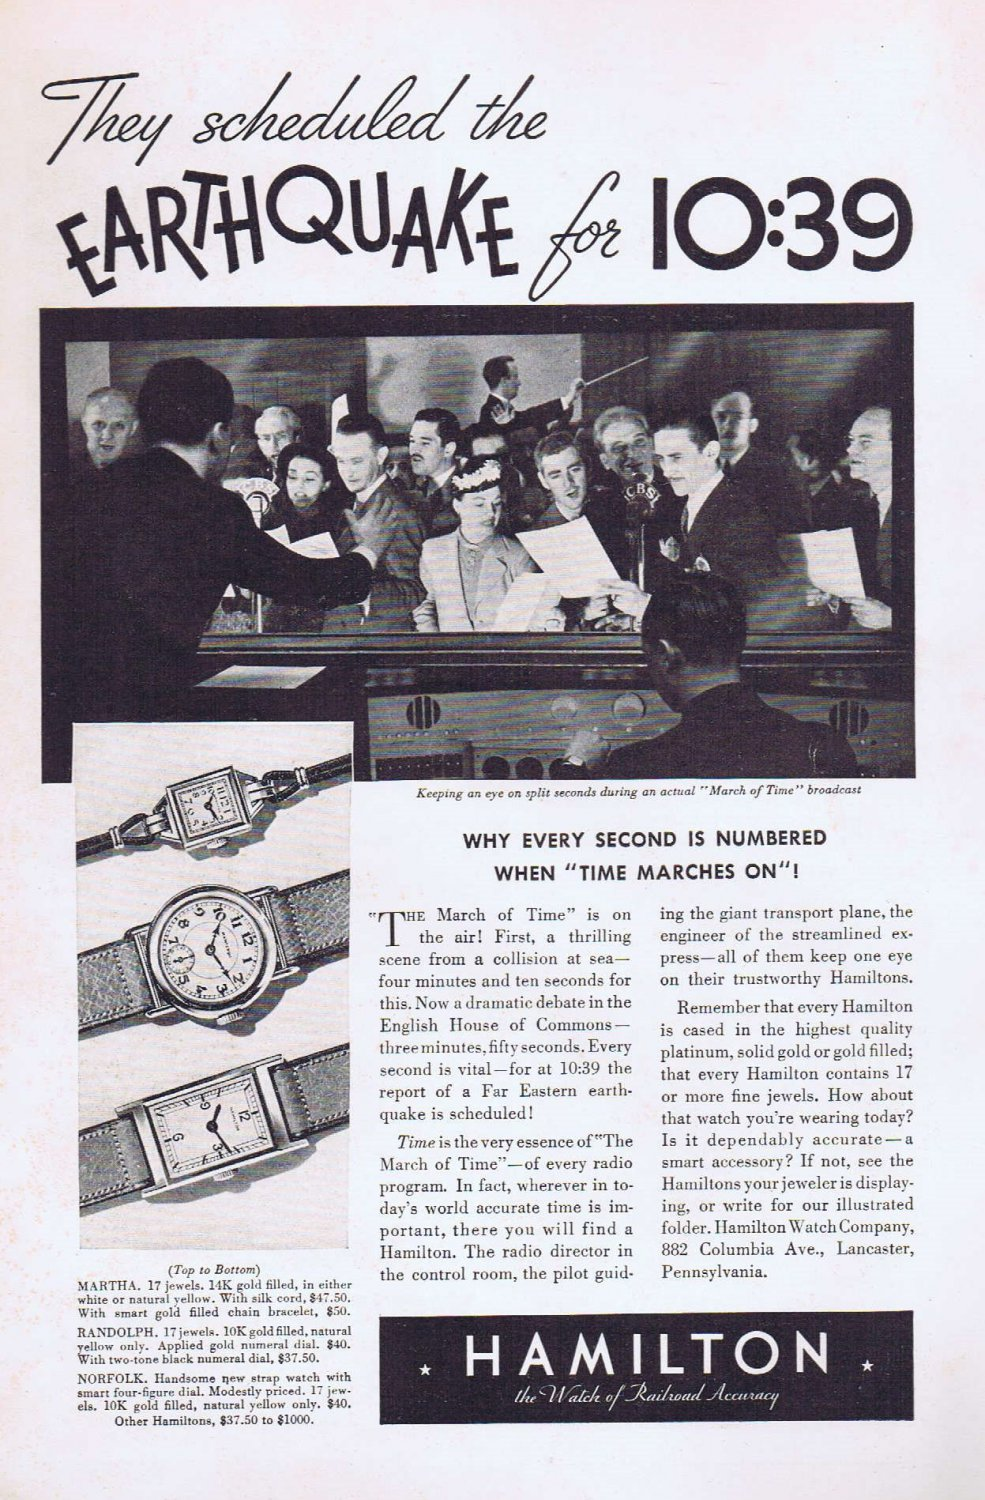 1936 Hamilton Watch Original Vintage Advertisement with March of Time Radio Broadcast